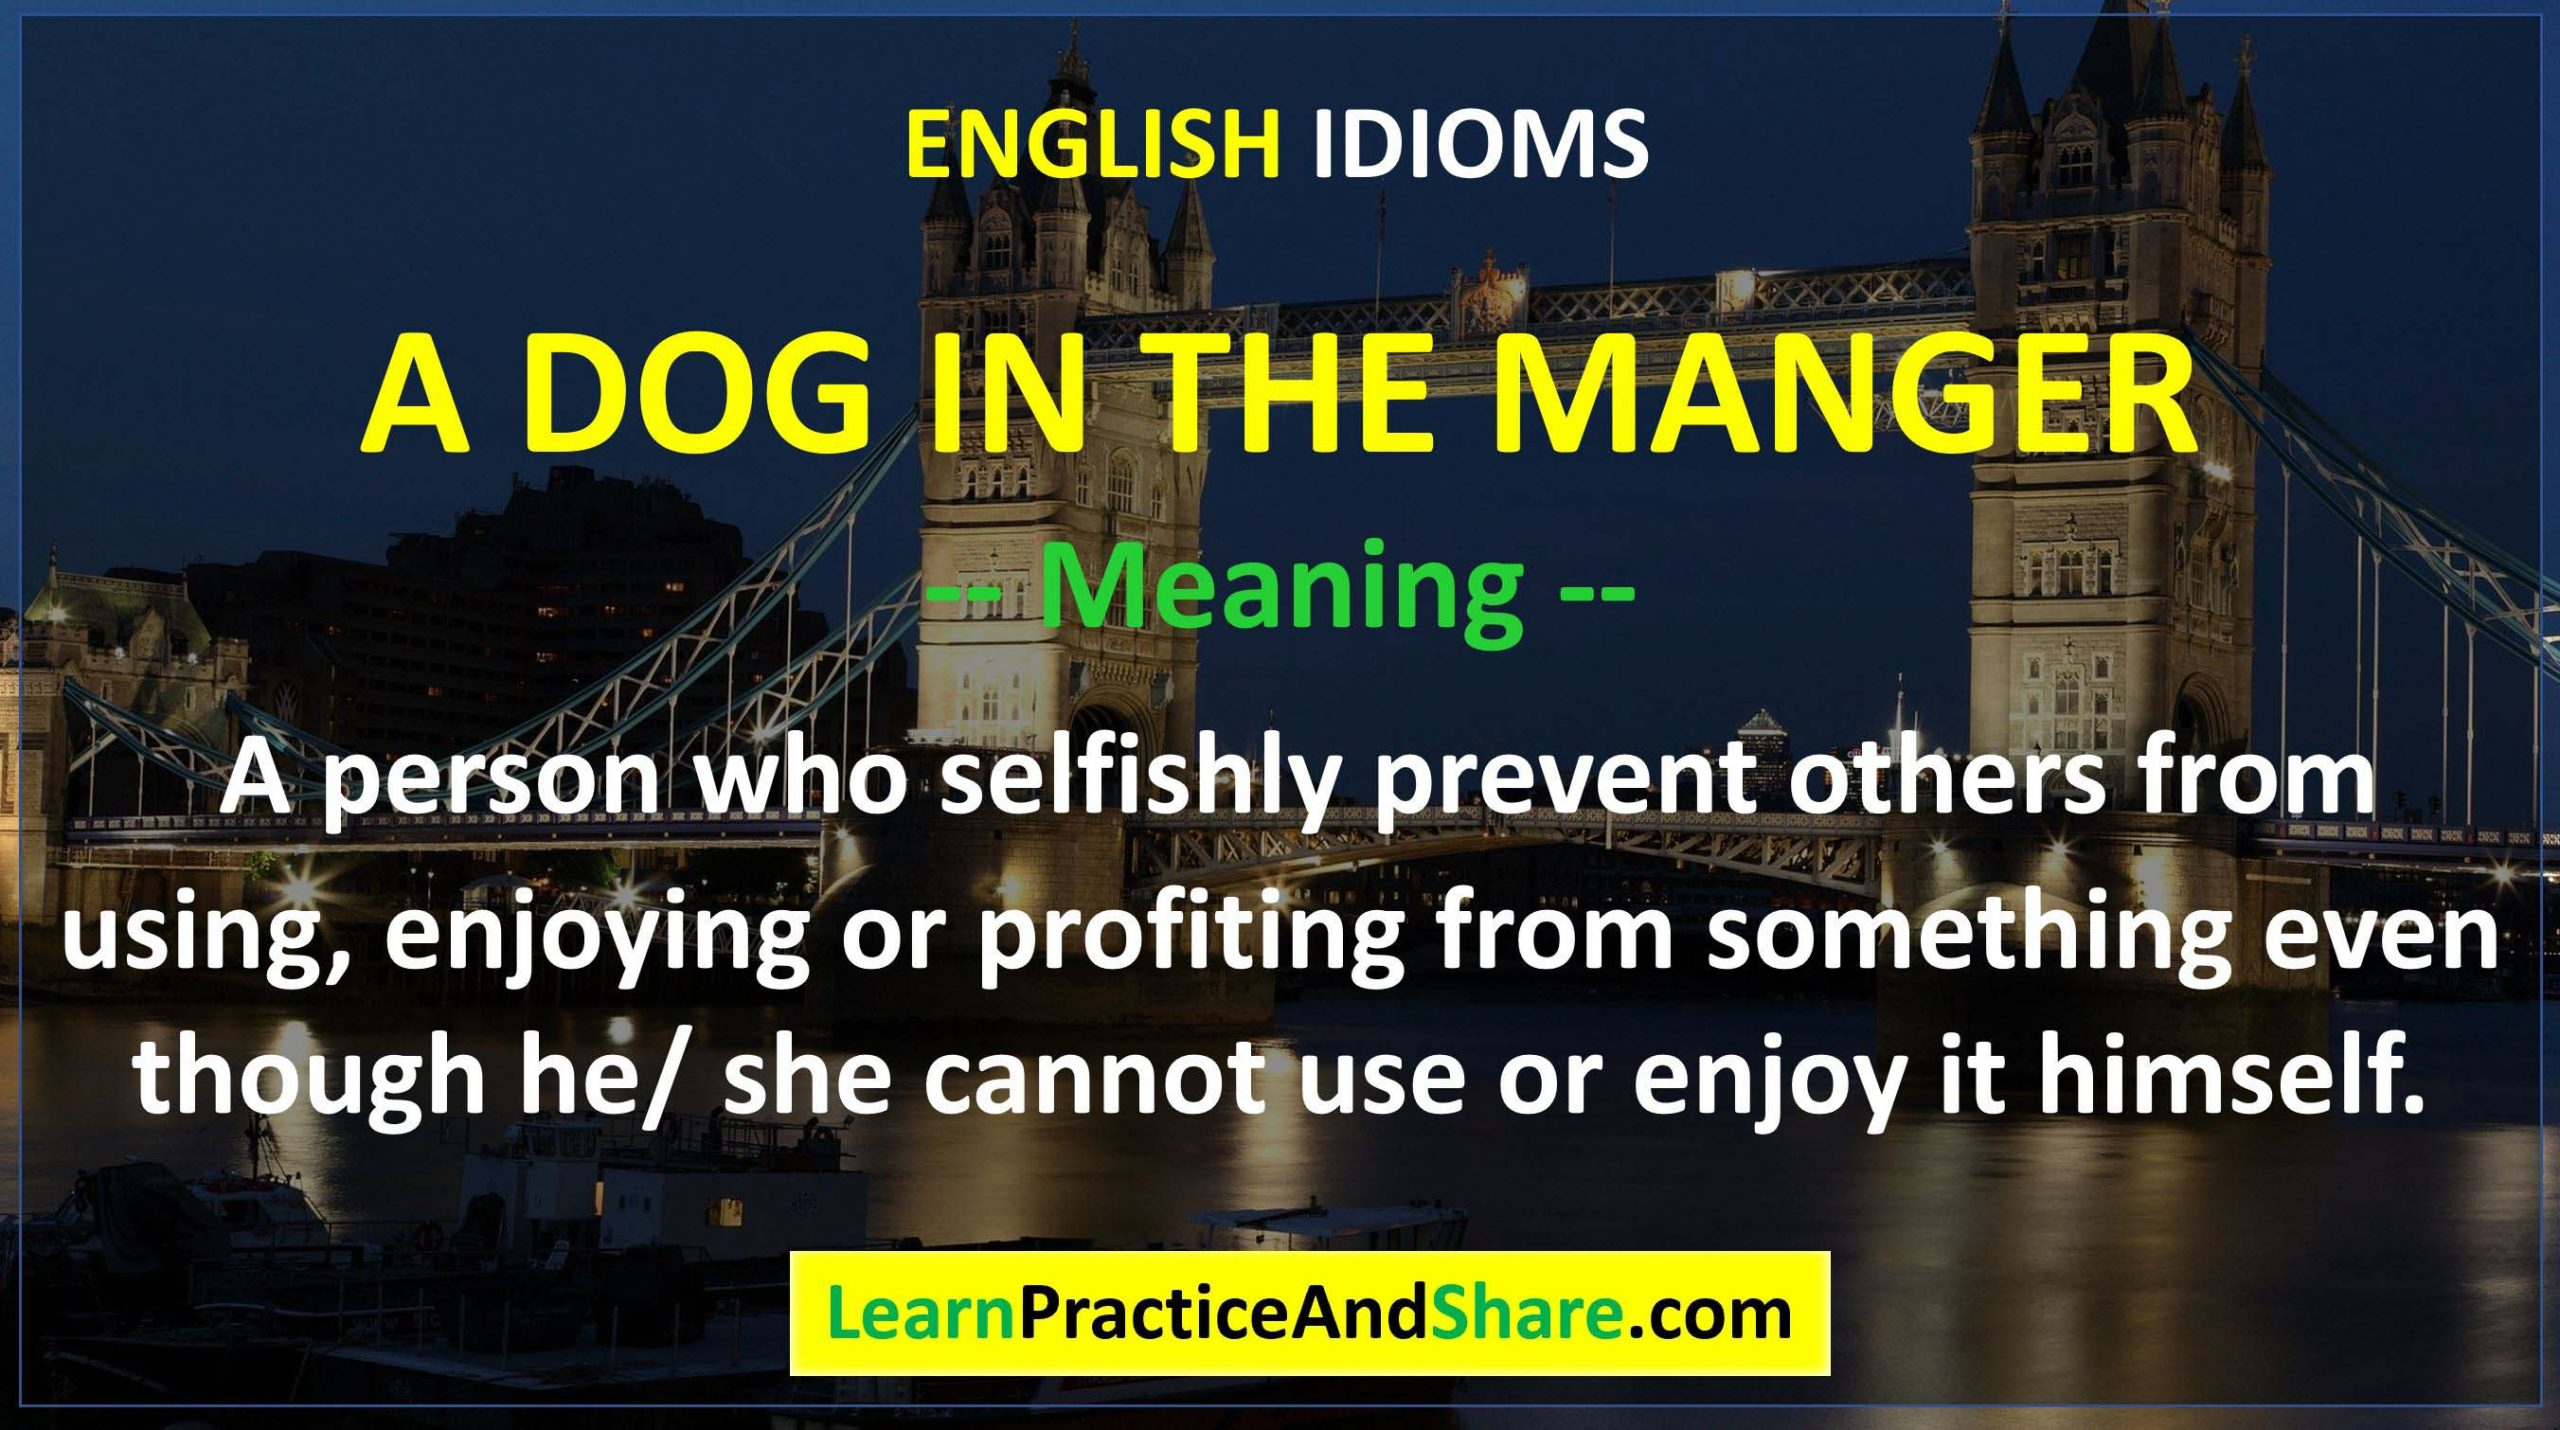 English Idiom - A Dog In The Manger